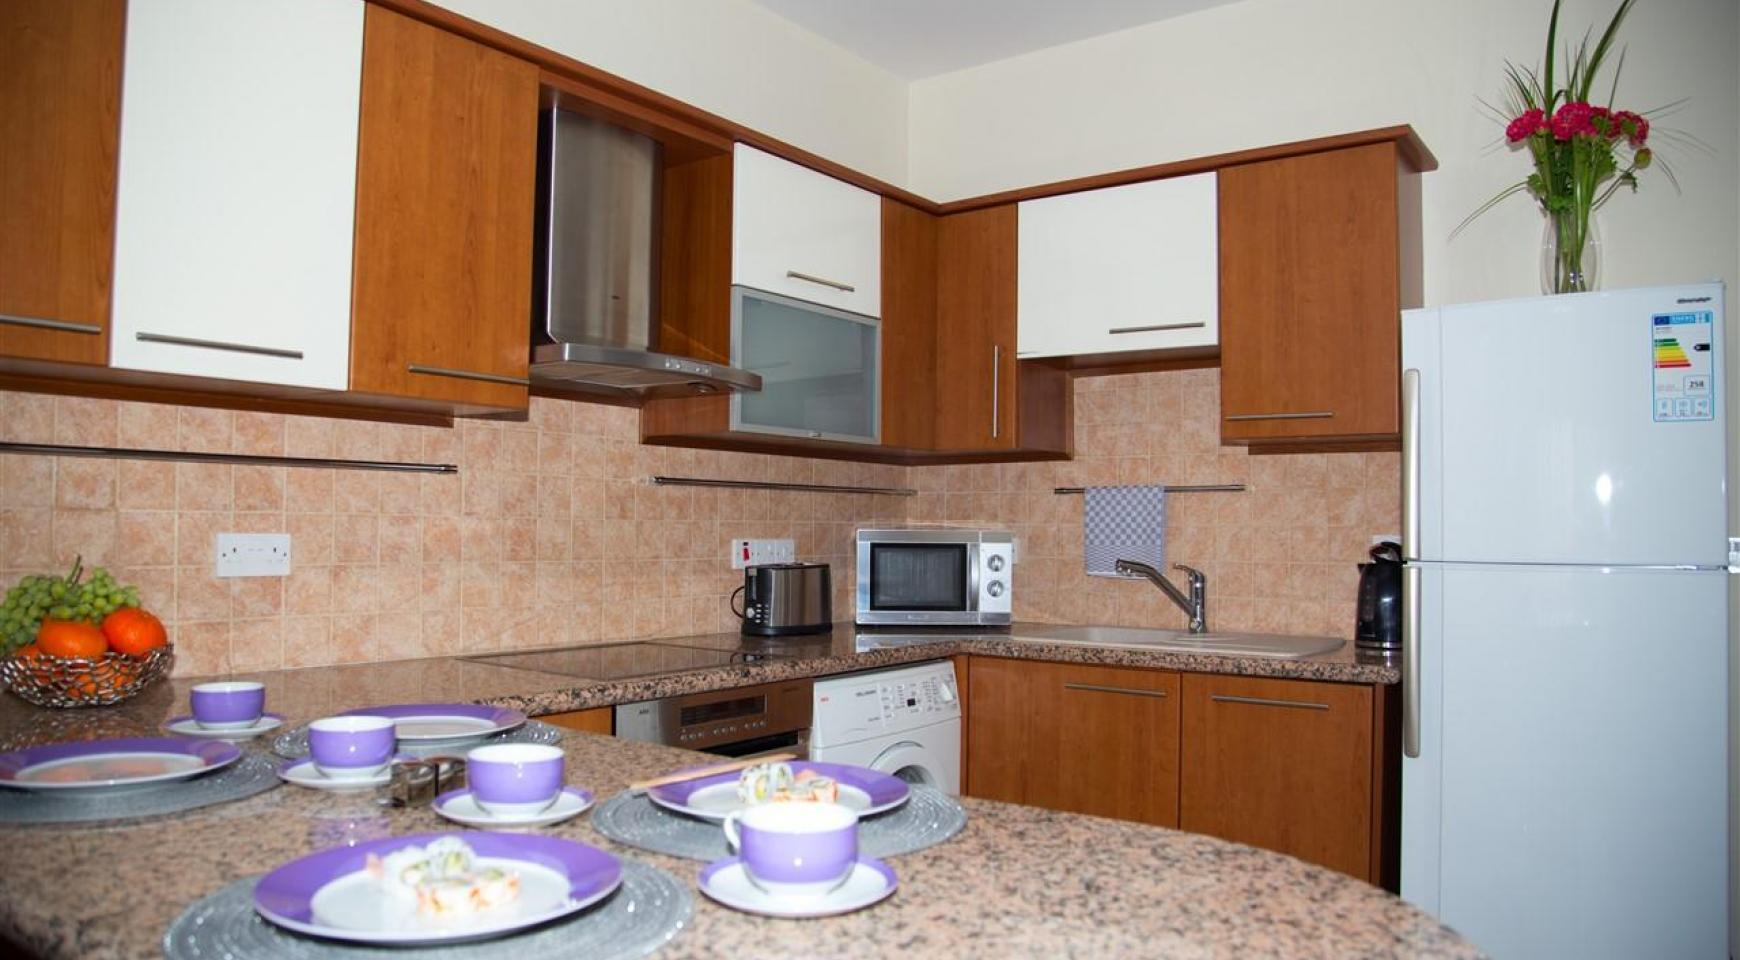 2 Bedroom Apartment in the Complex near the Sea - 13